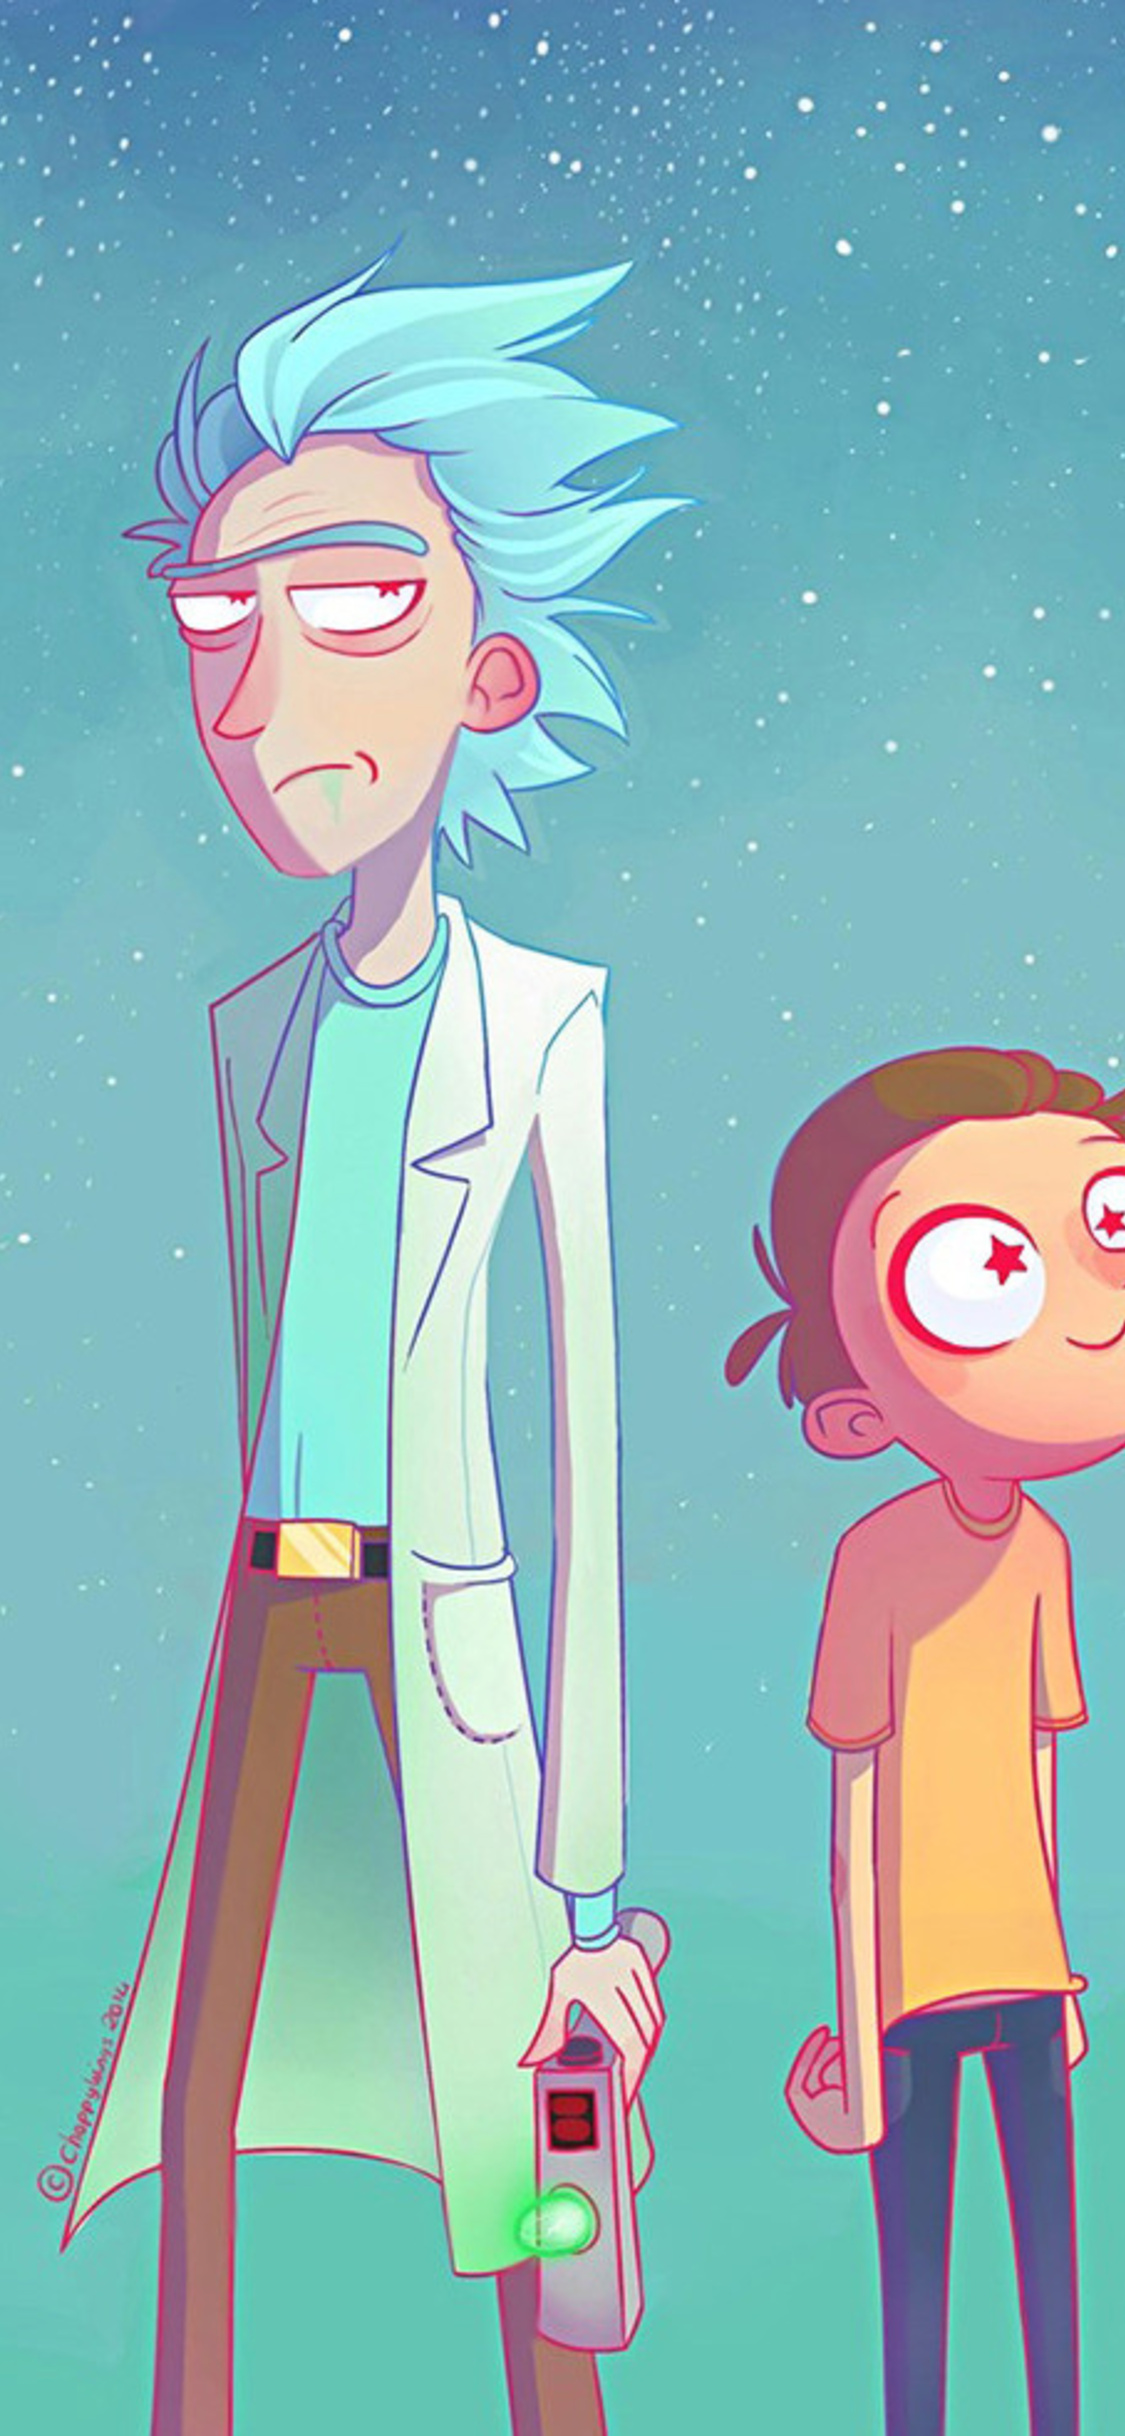 rick-and-morty-artwork-h9.jpg